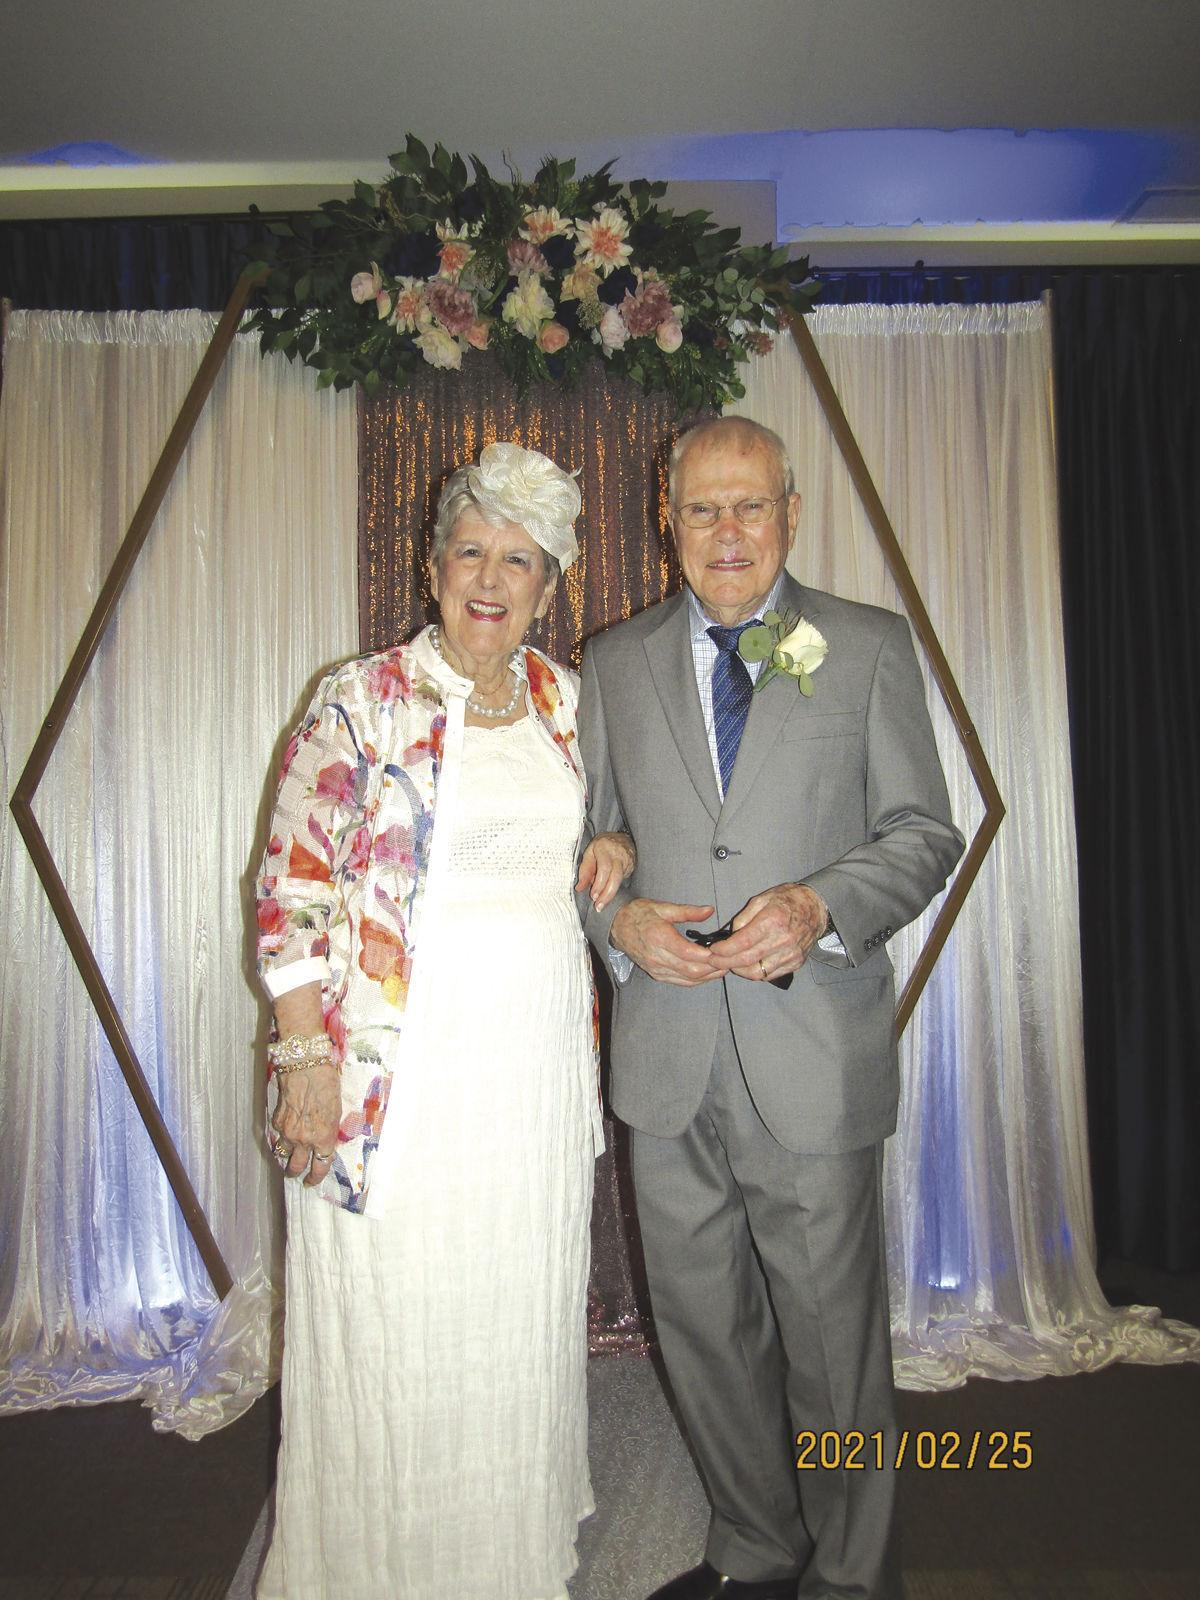 Brightmoor Hospice holds vow renewal ceremonies in Fayetteville